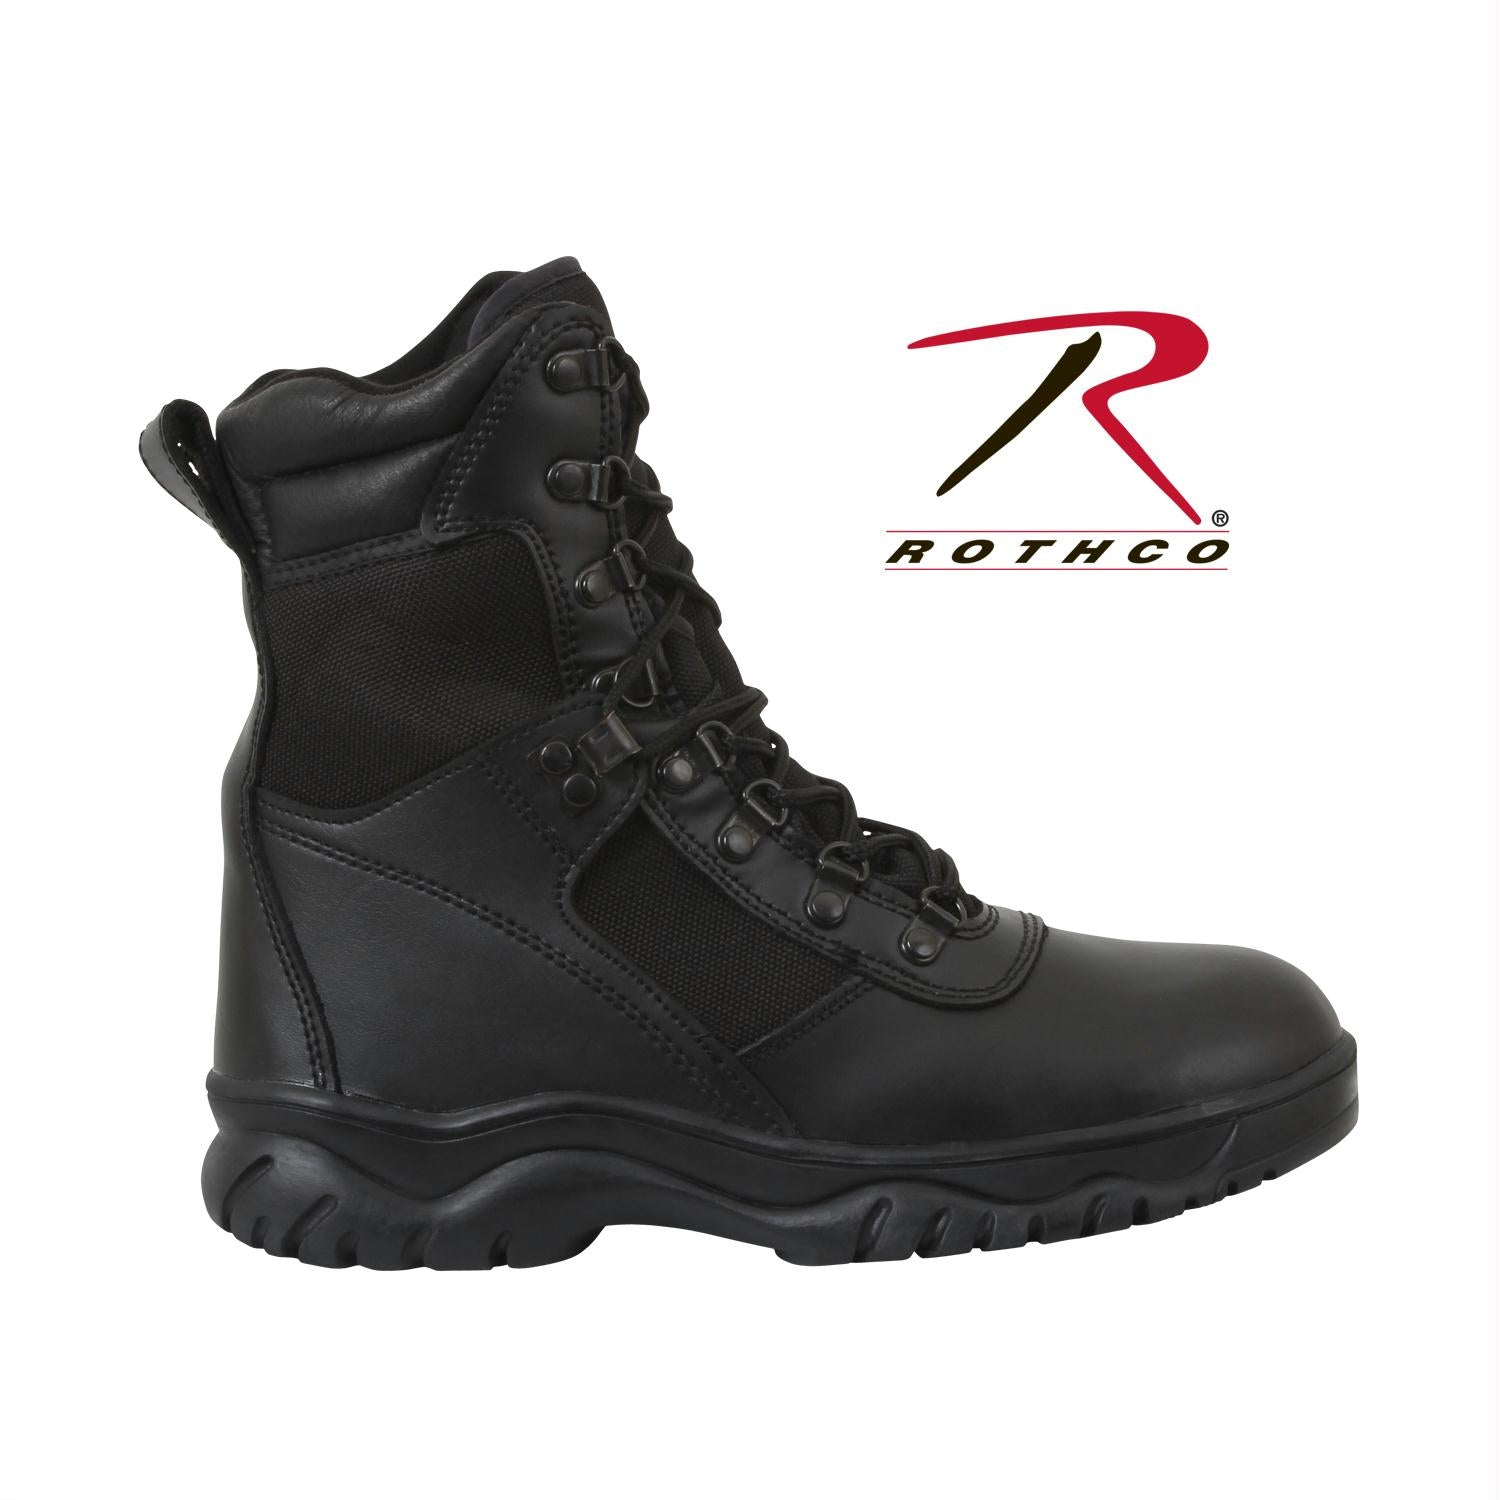 Rothco Forced Entry Waterproof Tactical Boot - 5